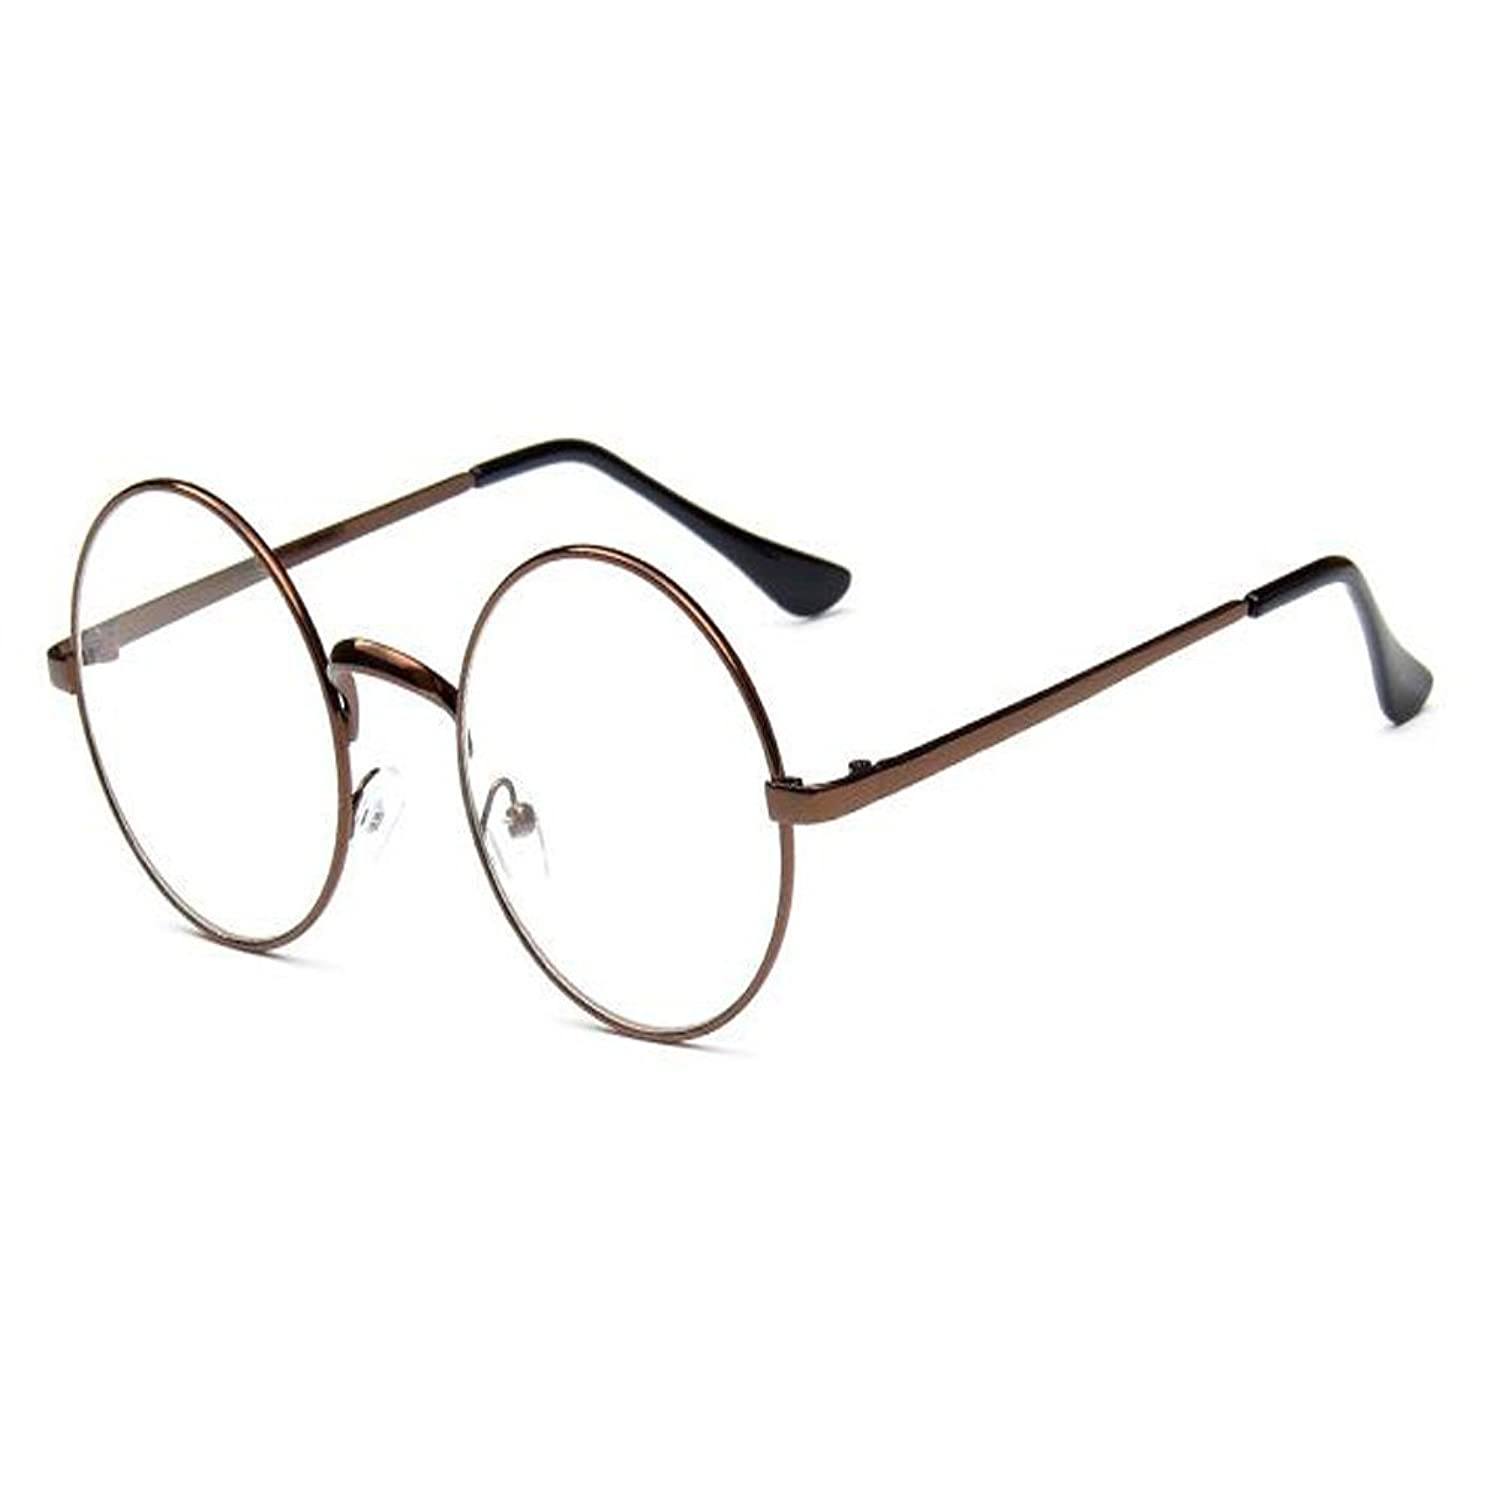 Aiweijia Mujeres Hombres gafas Metal Frame Nerd Retro Vintage Round Optical Eye glasses Clear Lens